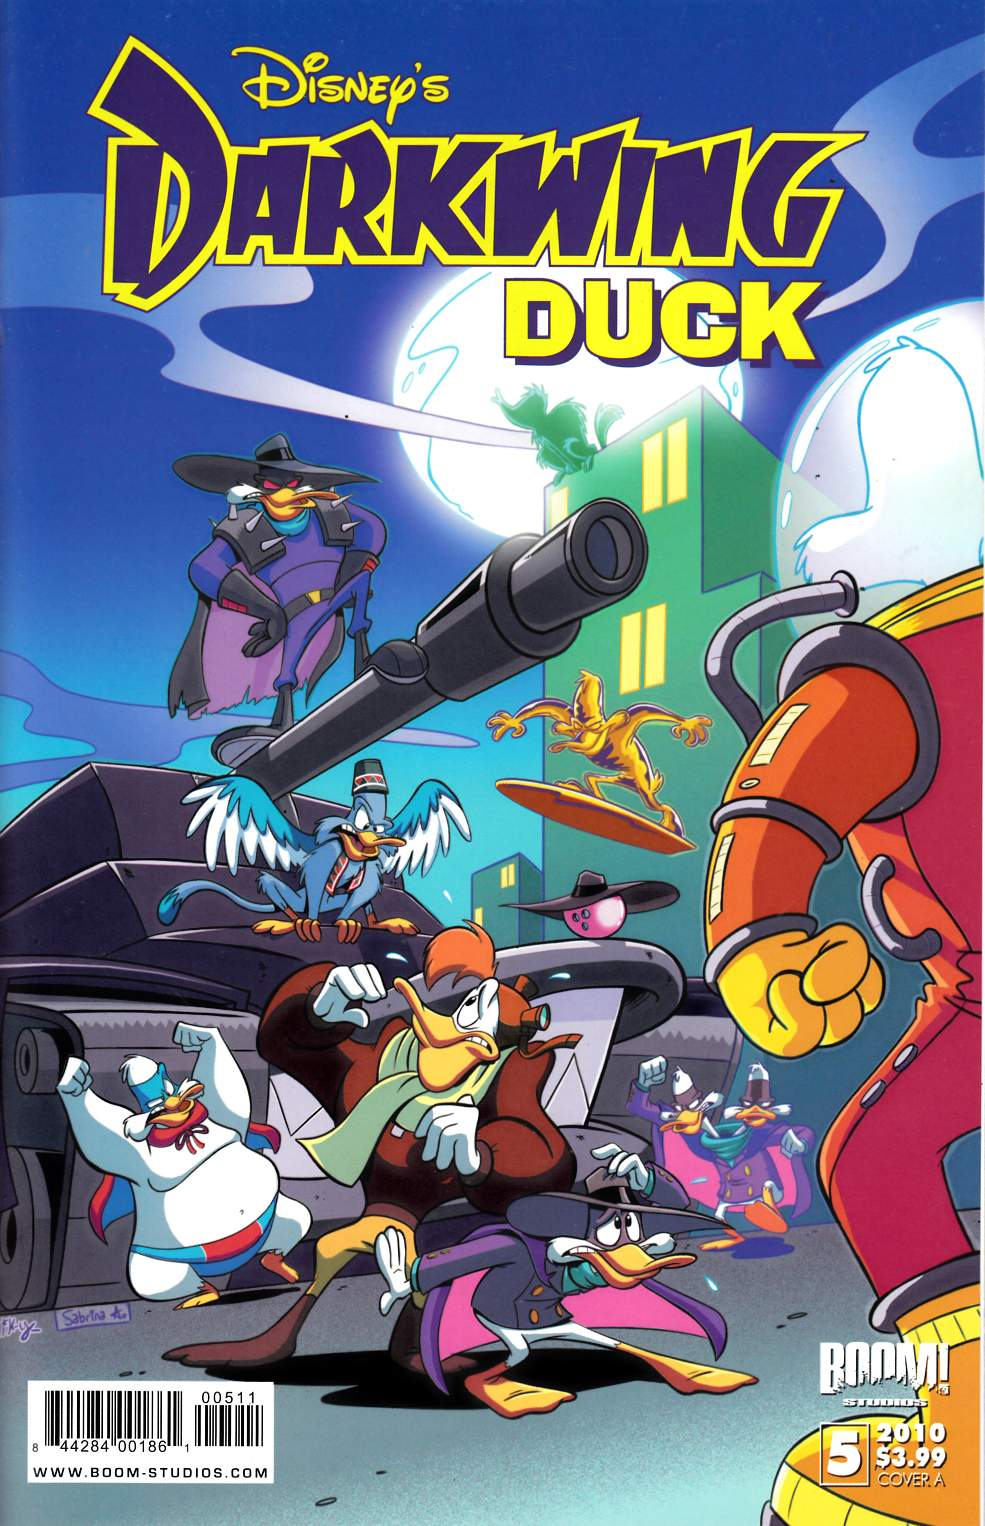 Darkwing Duck #5 Cover A Near Mint (9.4) [Boom Comic] THUMBNAIL